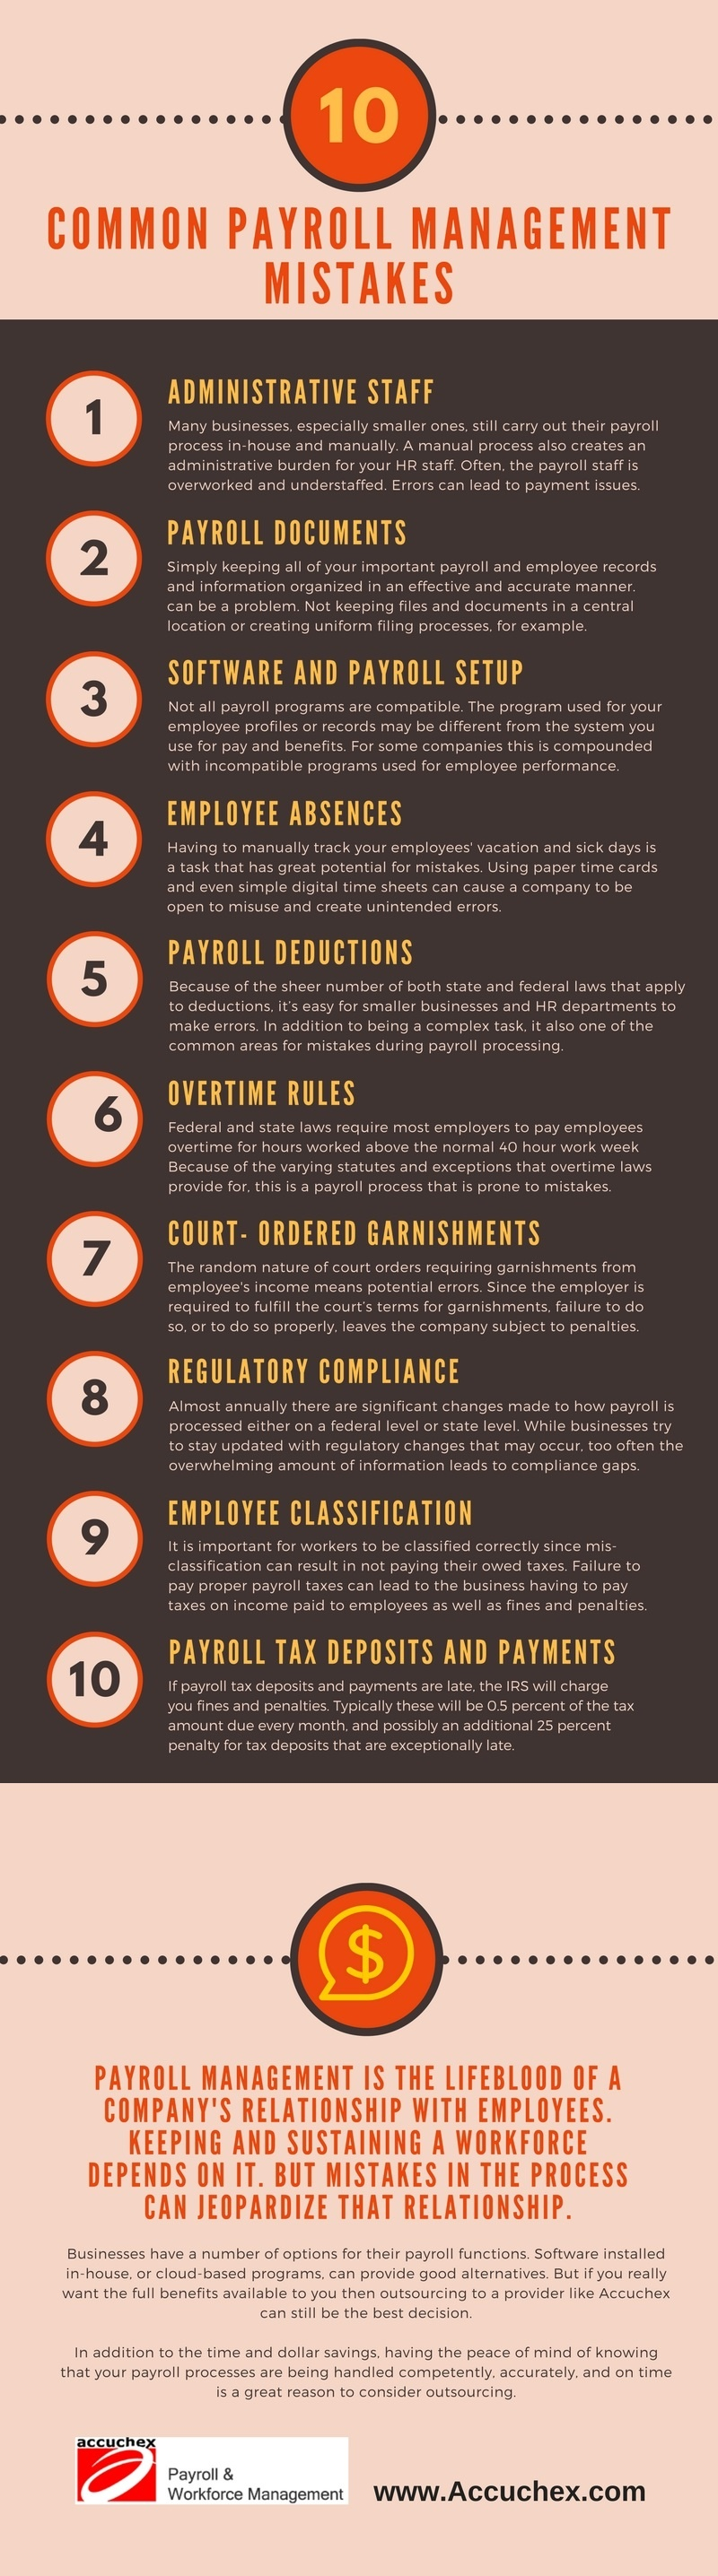 10-common-payroll-management-mistakes.jpg